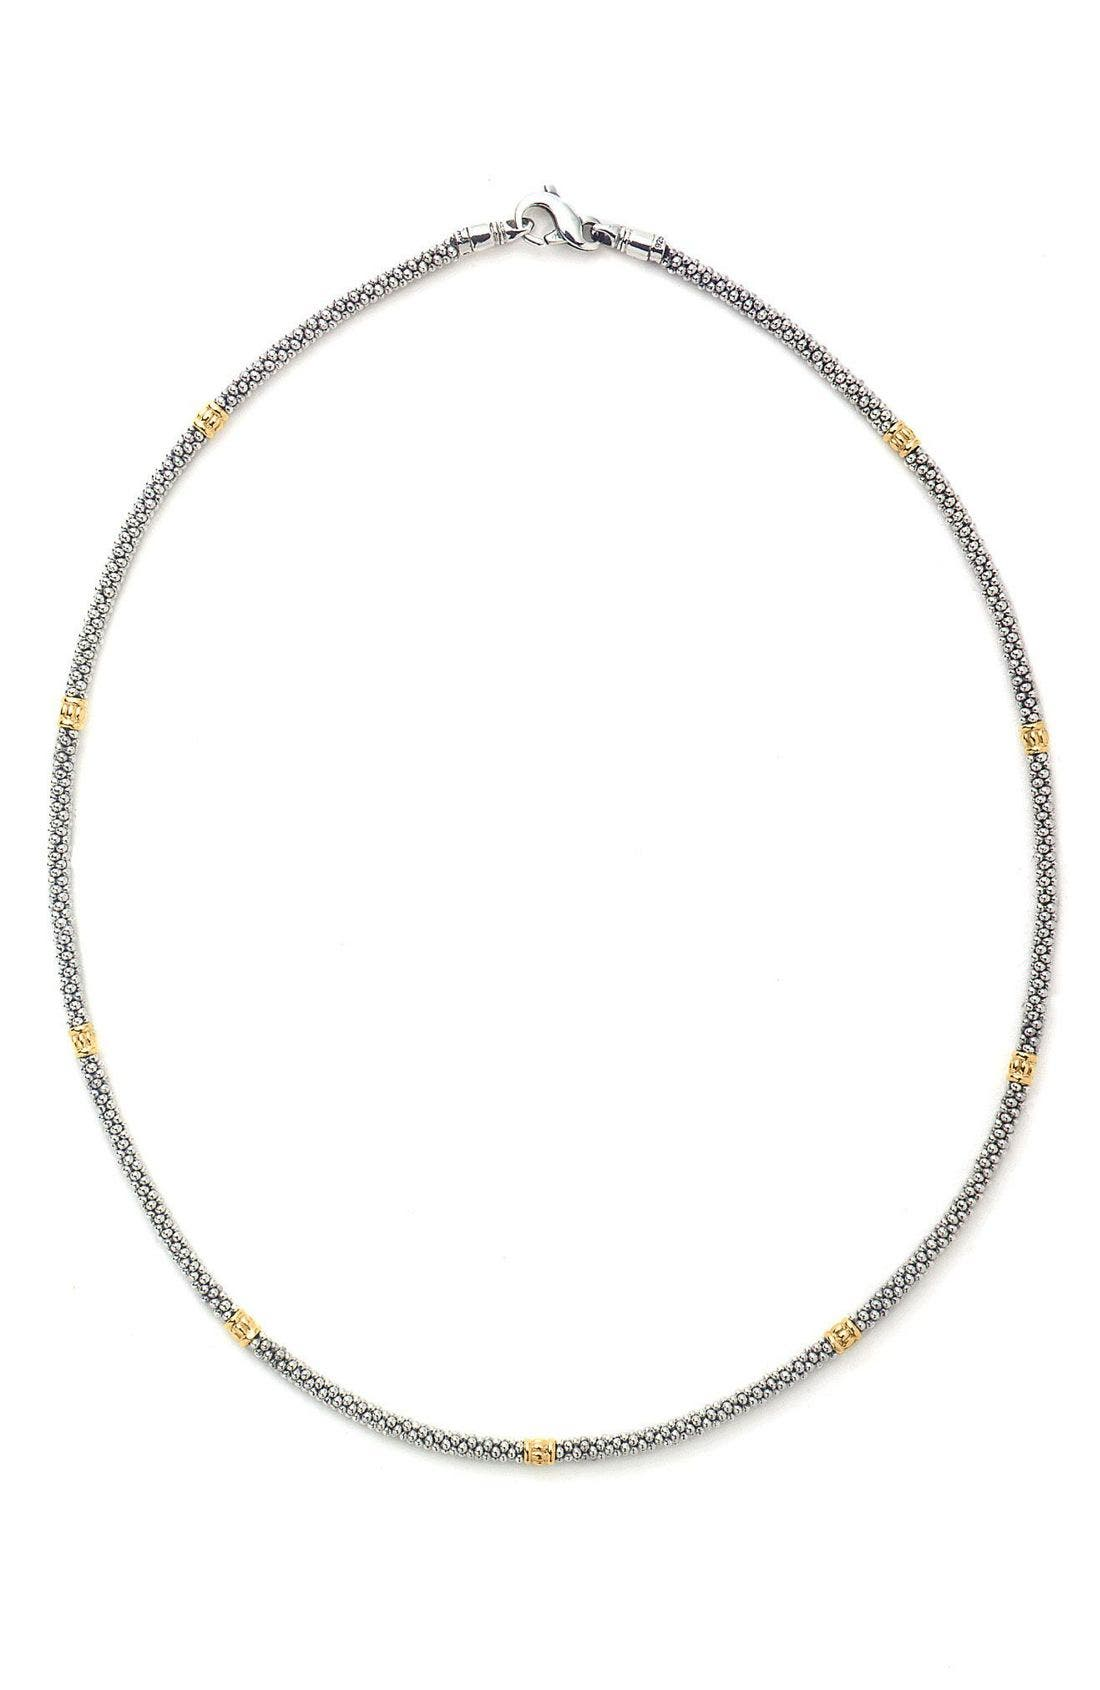 Caviar Rope Necklace,                             Main thumbnail 1, color,                             Silver/Gold